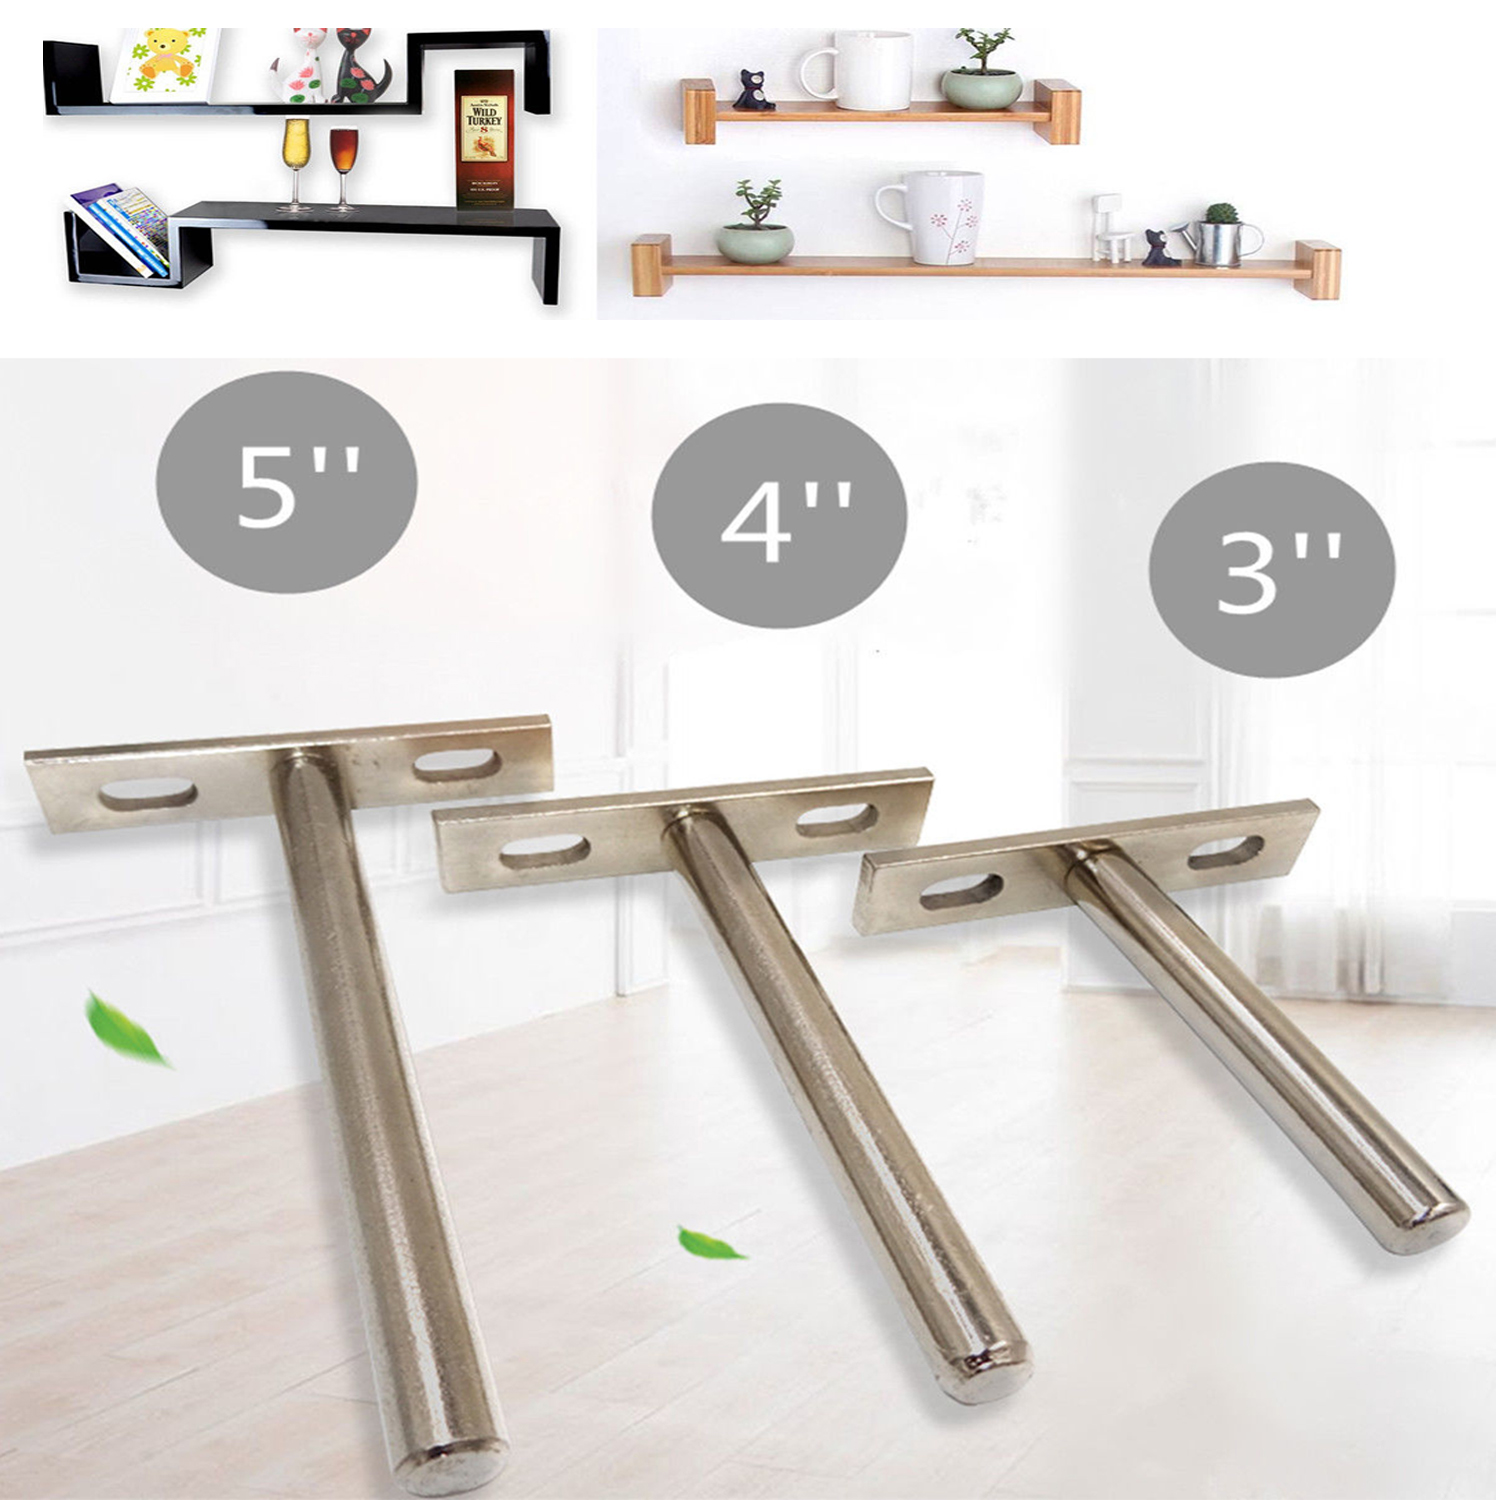 concealed shelf heavy duty strong support brackets hidden floating details about shelves gauteng instant shower heater kitchen insert small square creative wall bookshelves